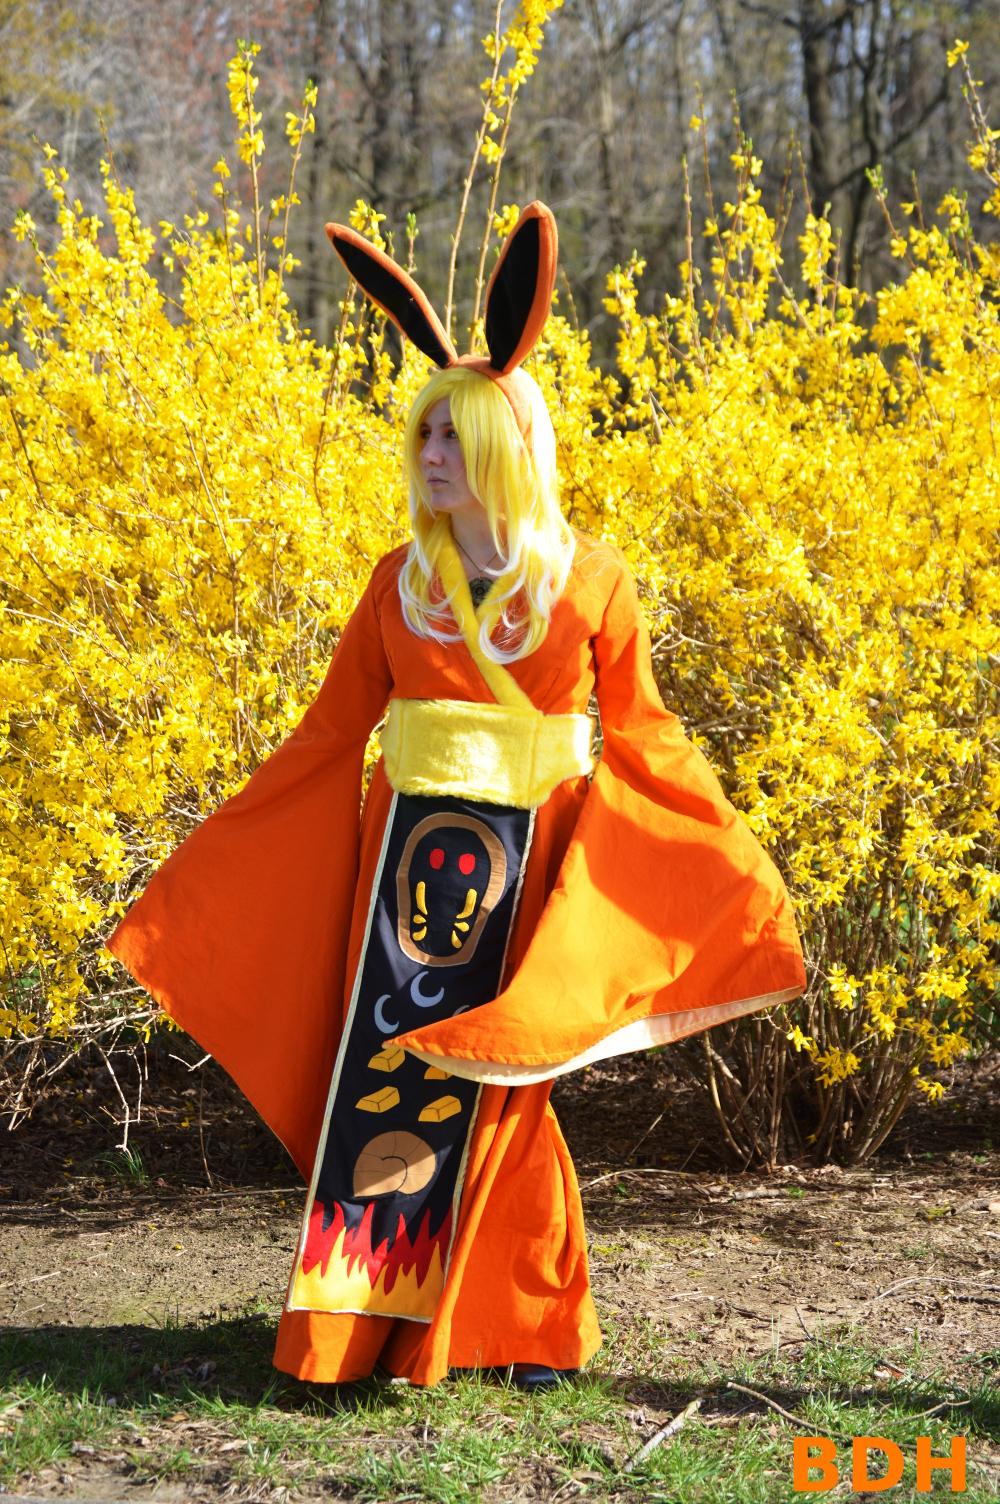 Flareon cosplay involving an orange gown with bell sleeves, long orange ears, and a banner depicting Kabuto and other TPP symbols.